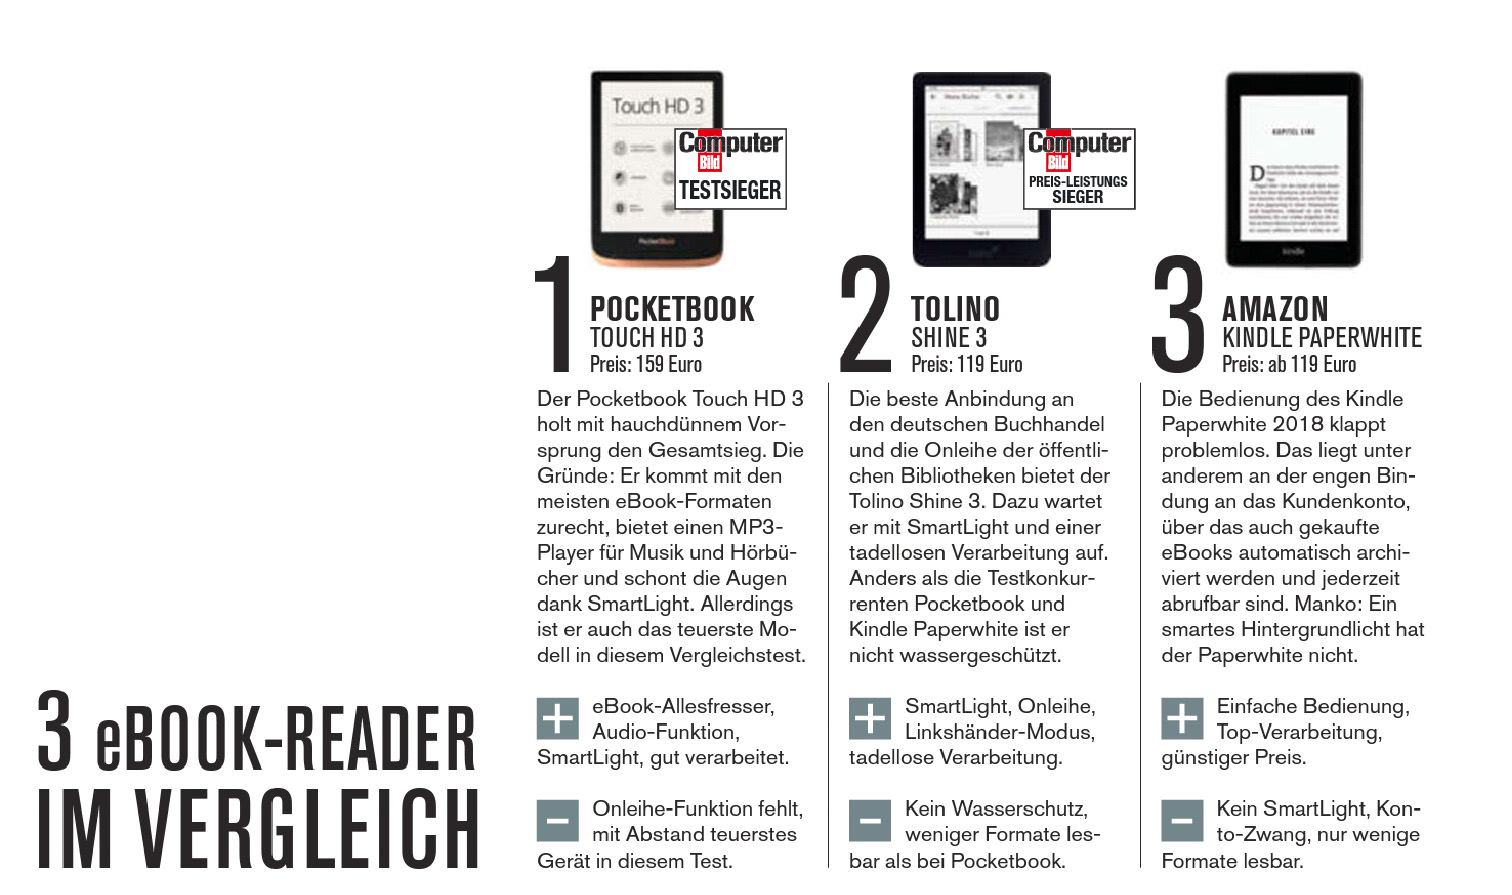 Ranking magazynu Computer Blind, Pocketbook Touch HD 3, Kindle Paperwhite IV.